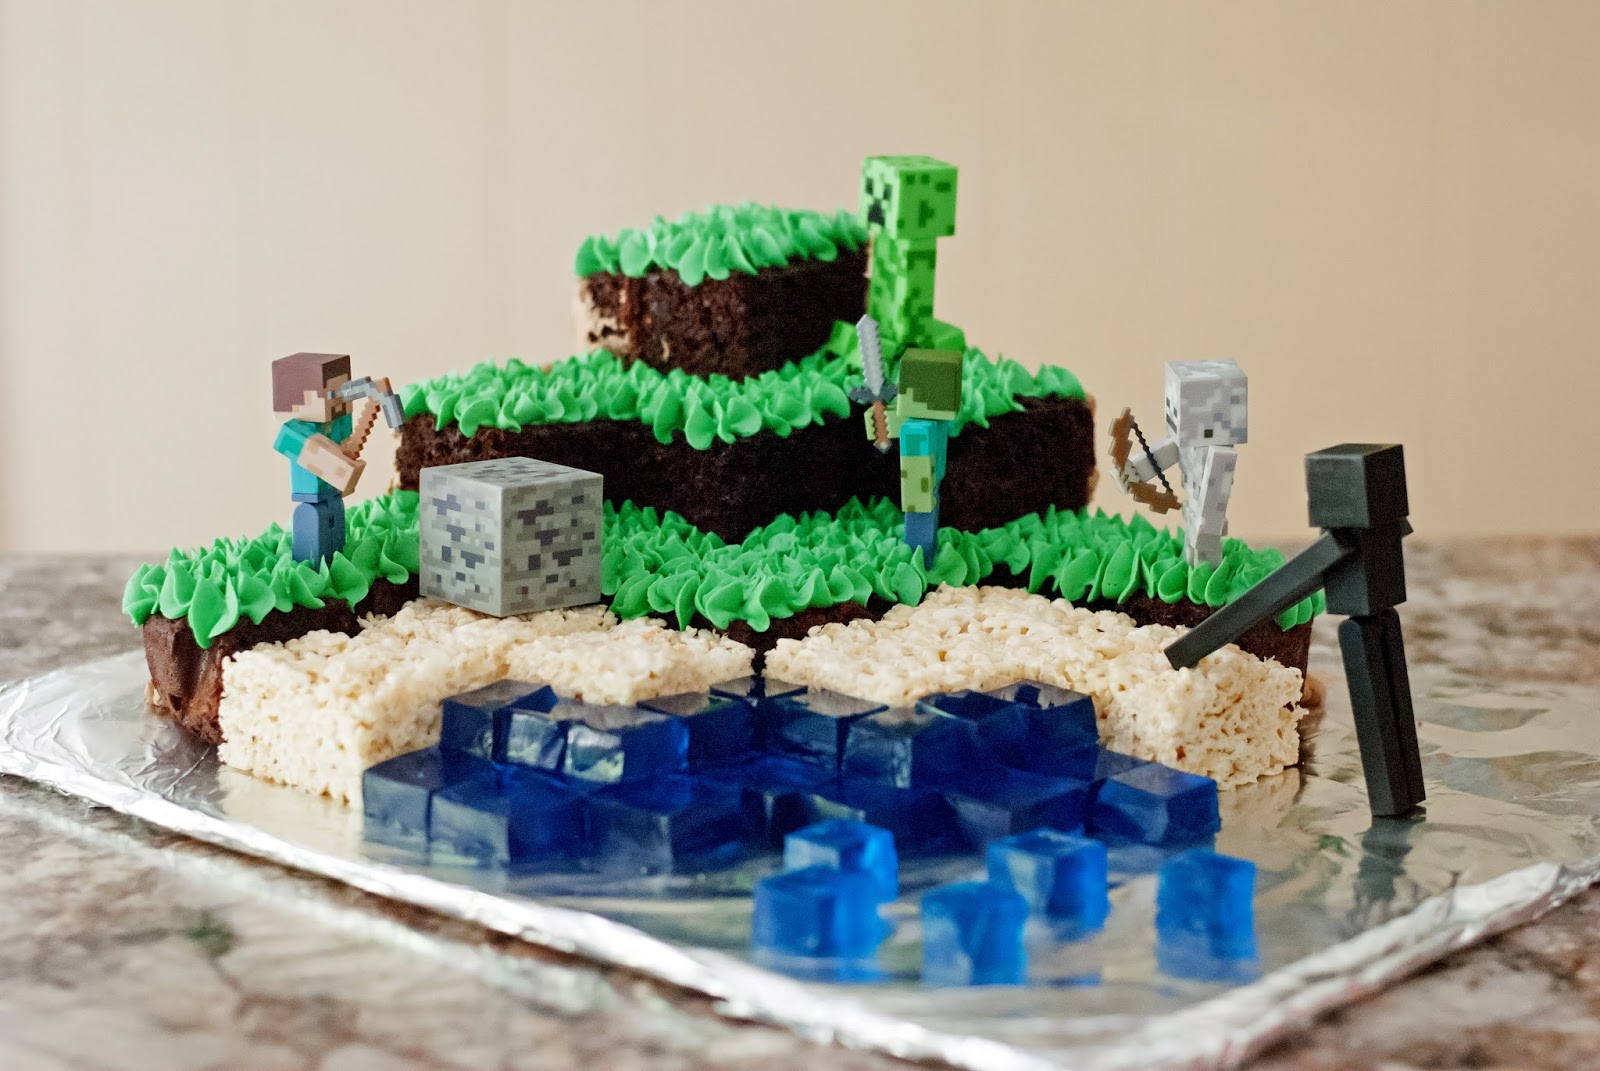 Minecraft Images For Birthday Cake : Ali a la mode: Minecraft Cake {{Chocolate Cake & Swiss ...